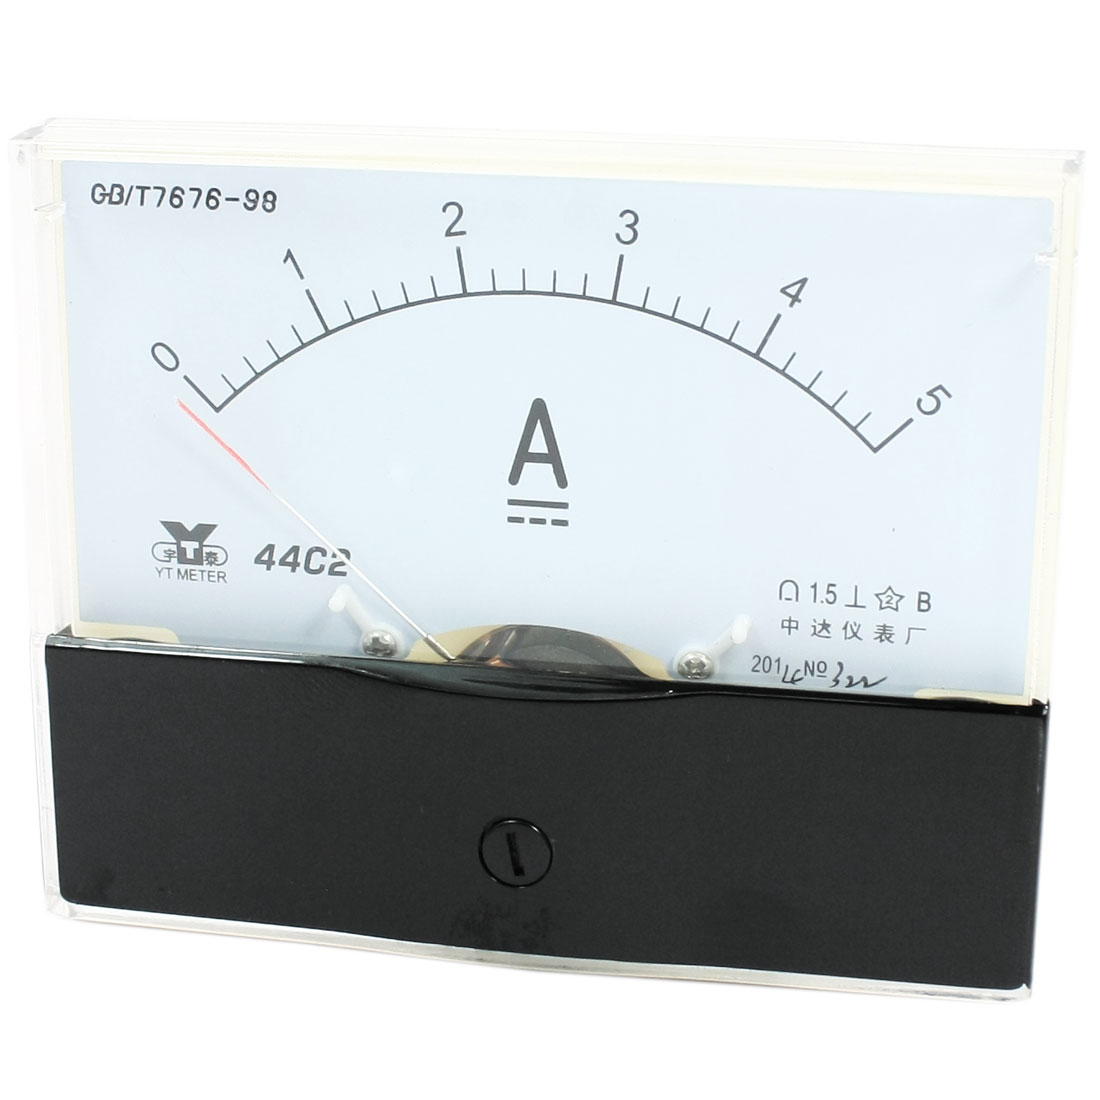 Rectangle Measurement Tool Analog Panel Ammeter Gauge DC 0 - 5A Measuring Range 44C2